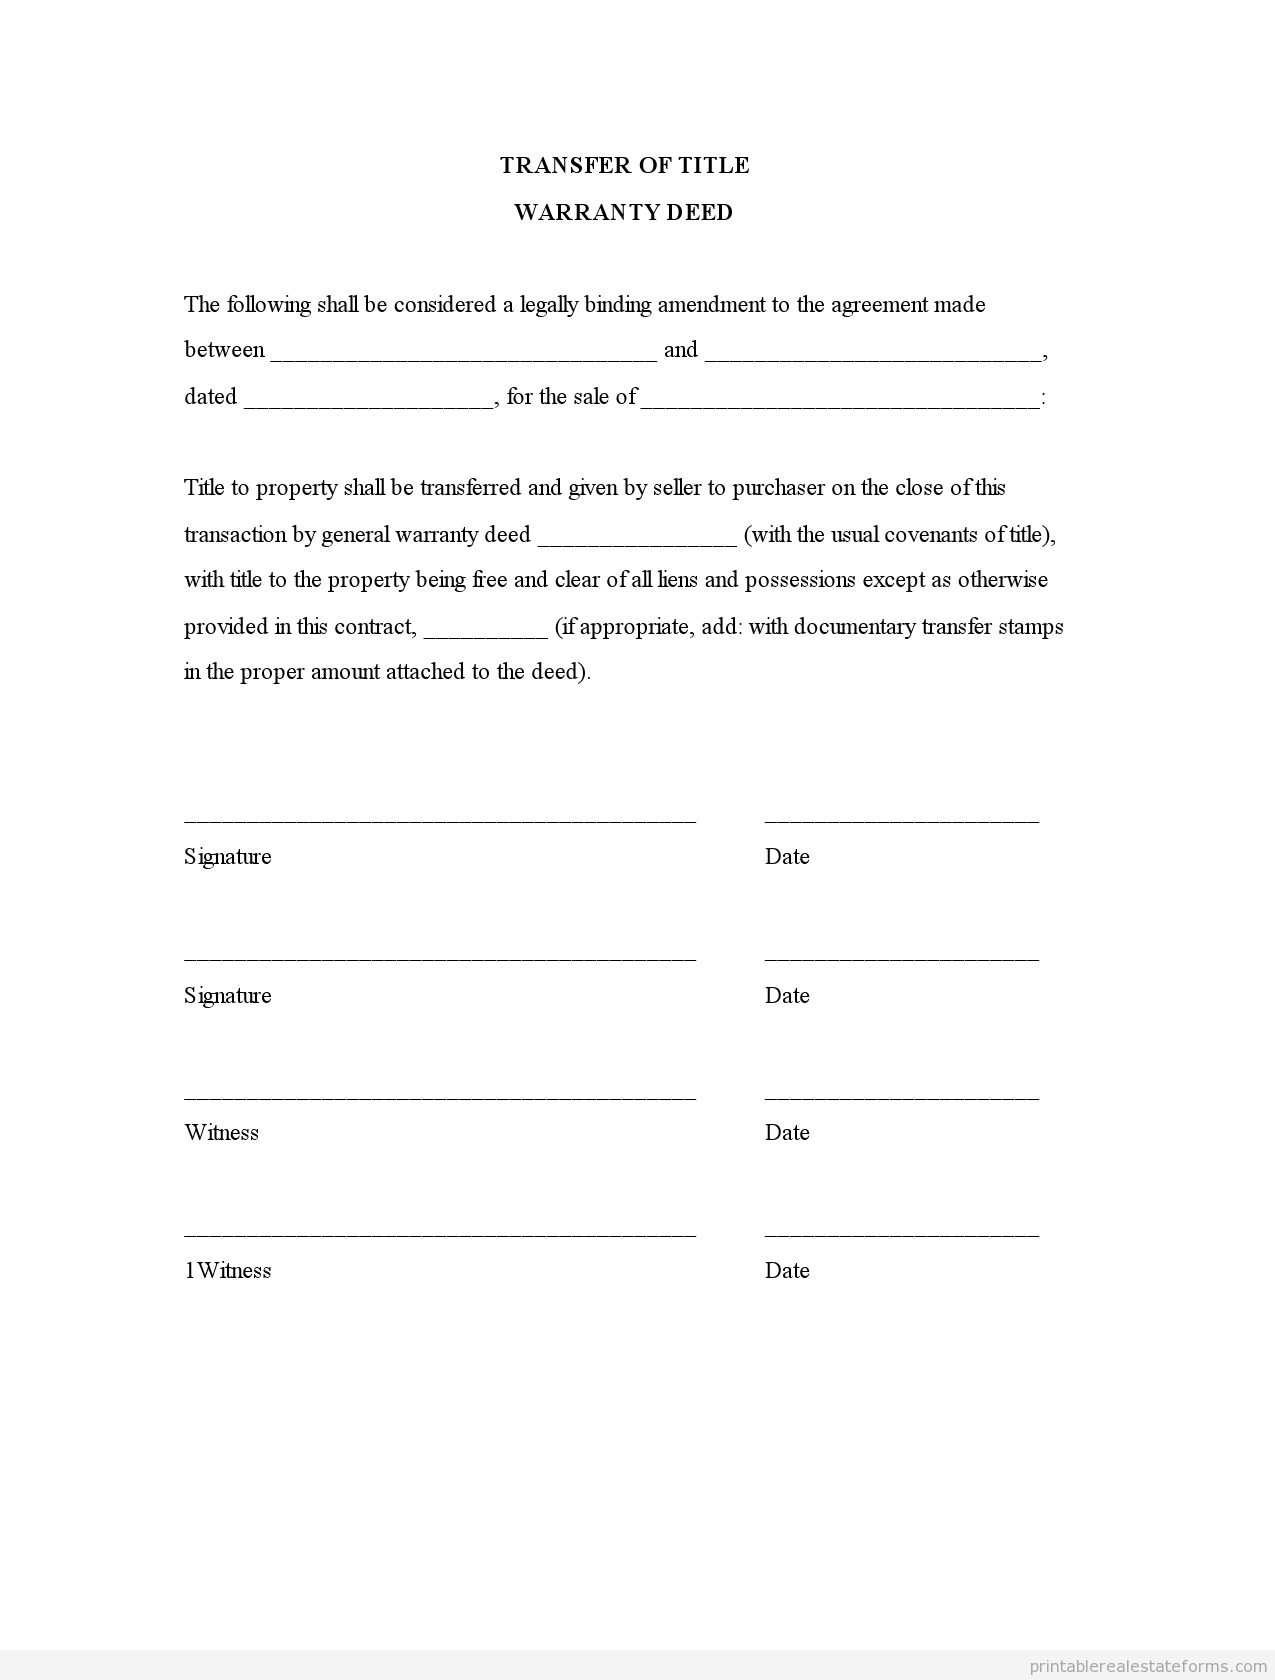 Printable Transfer Of Title Warranty Deed Template   Sample